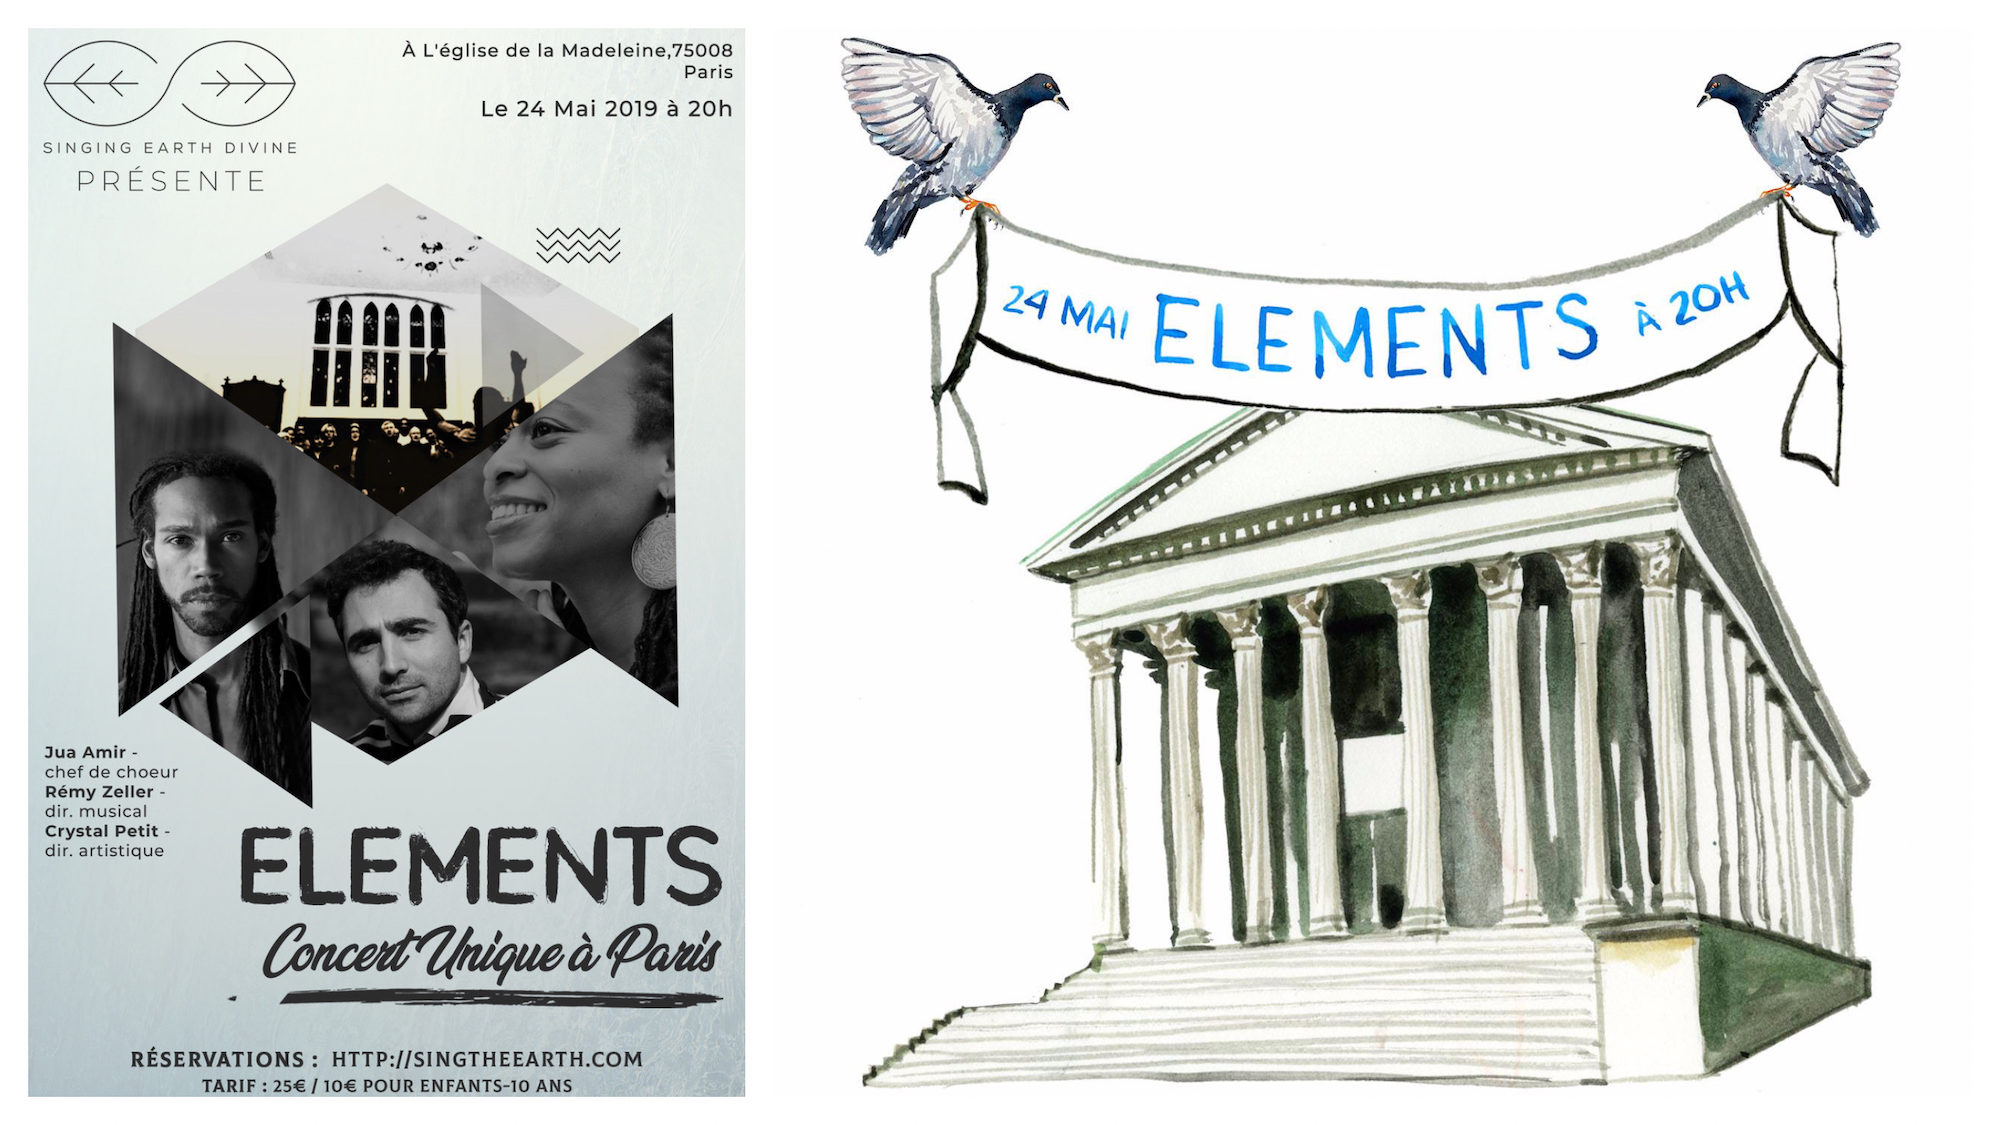 The Elements concert at the Madeleine Church is taking place this May in Paris.